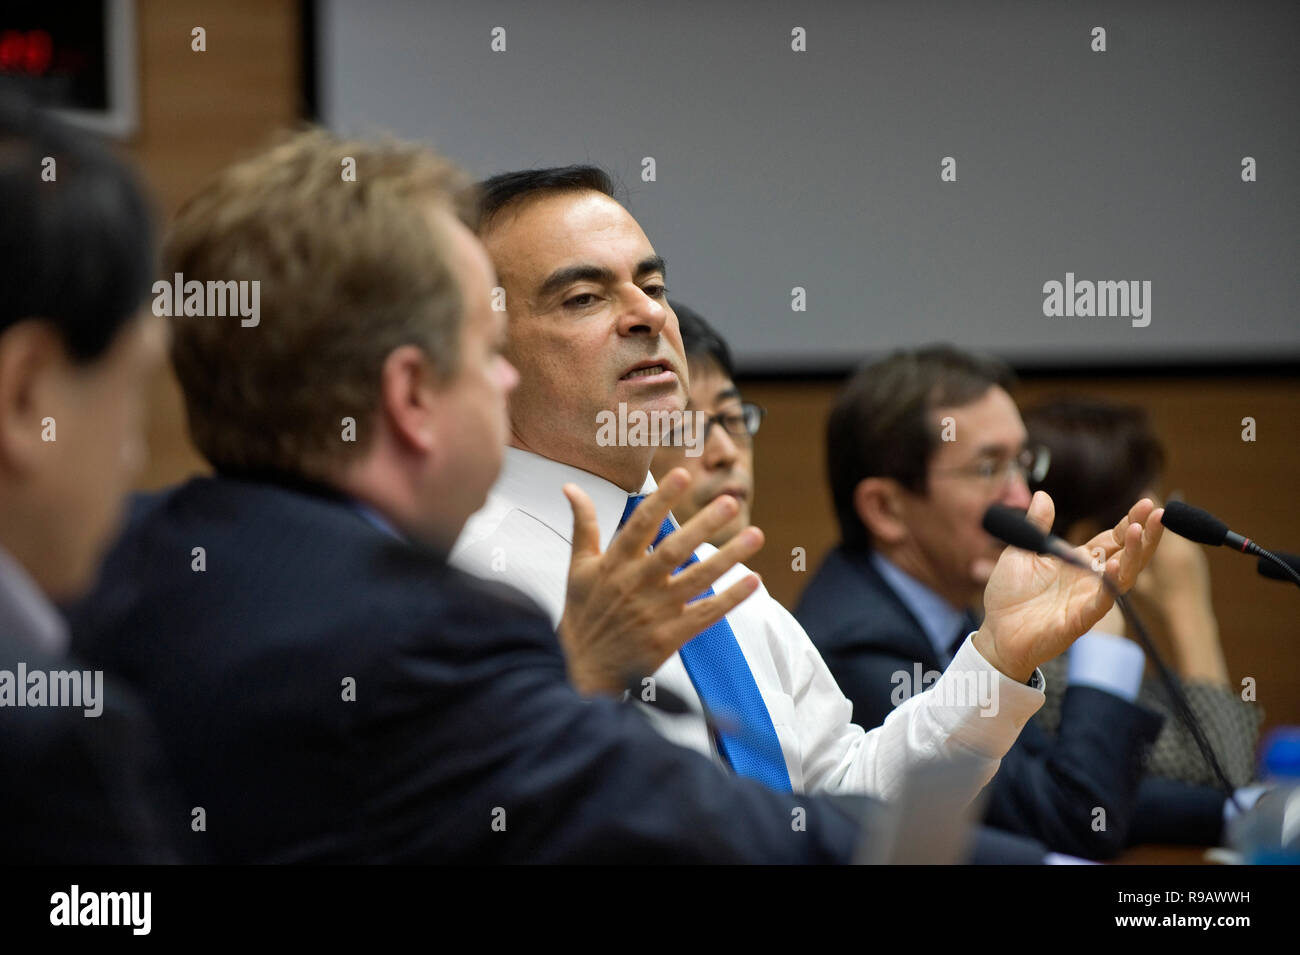 Carlos Ghosn, former president and CEO of Nissan Motor Co., speaks during an executive meeting at the automaker's HQ in Yokohama, Kanagawa Prefecture, - Stock Image